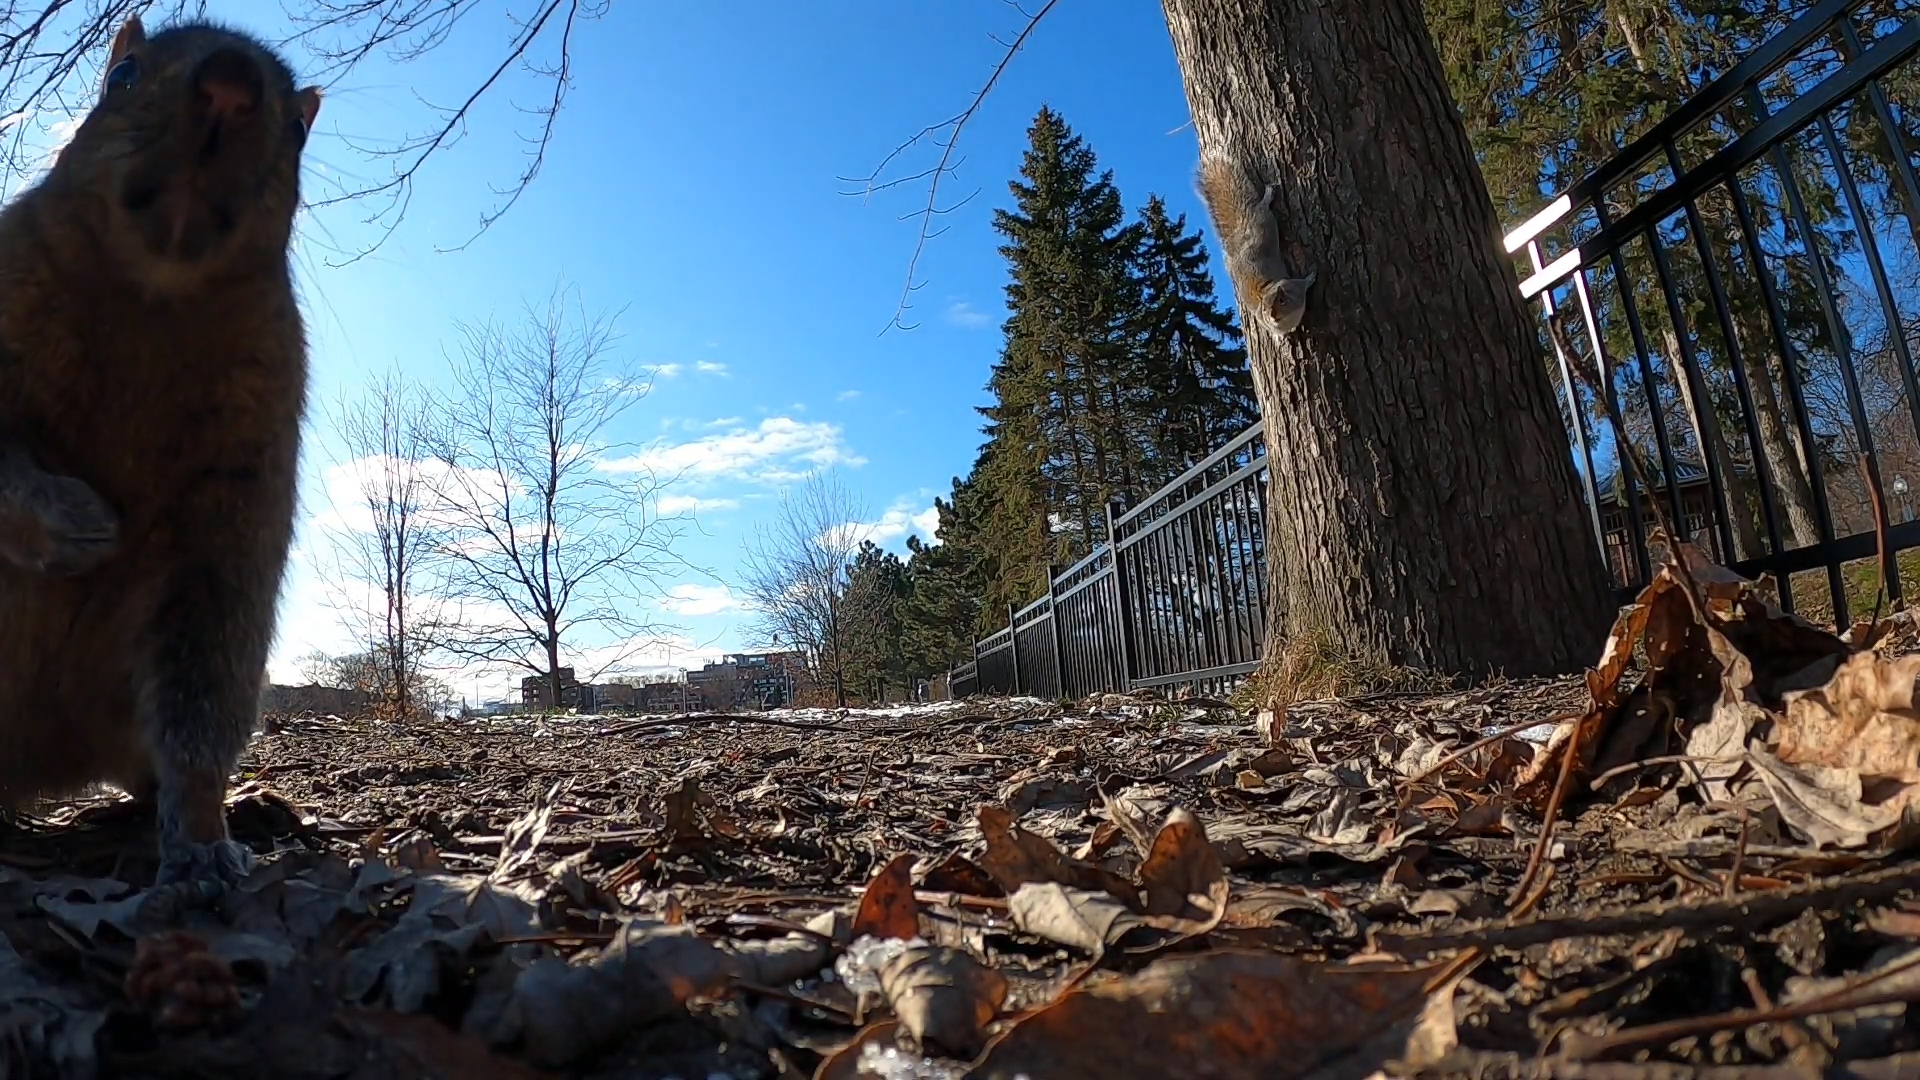 Squirrel takes GoPro camera for ride up tree in Montreal